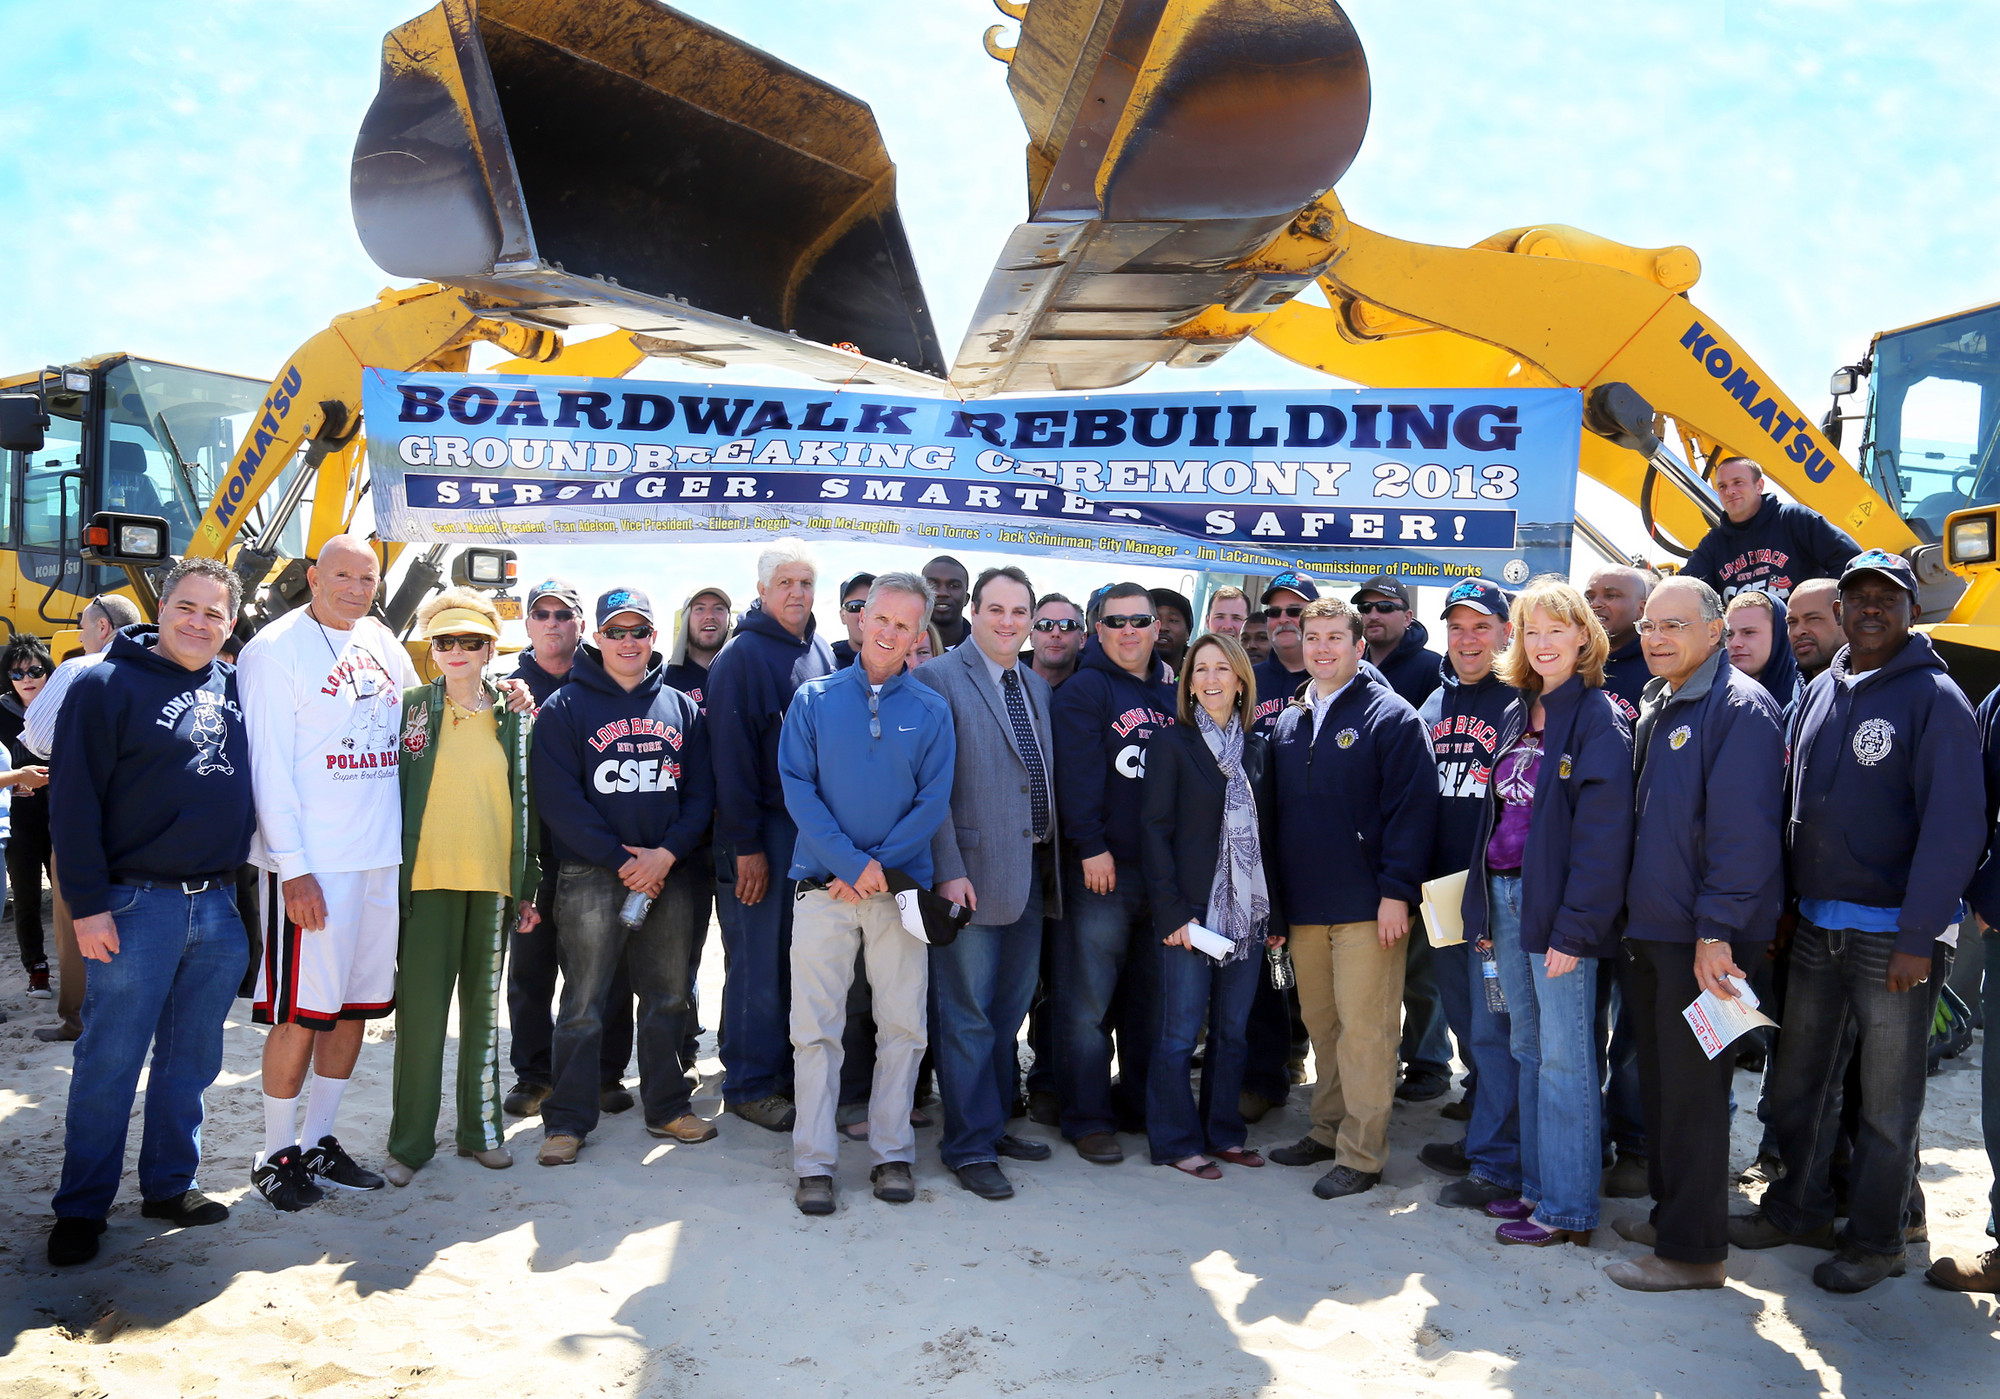 Officials and residents and city workers at Saturday's boardwalk groundbreaking ceremony.